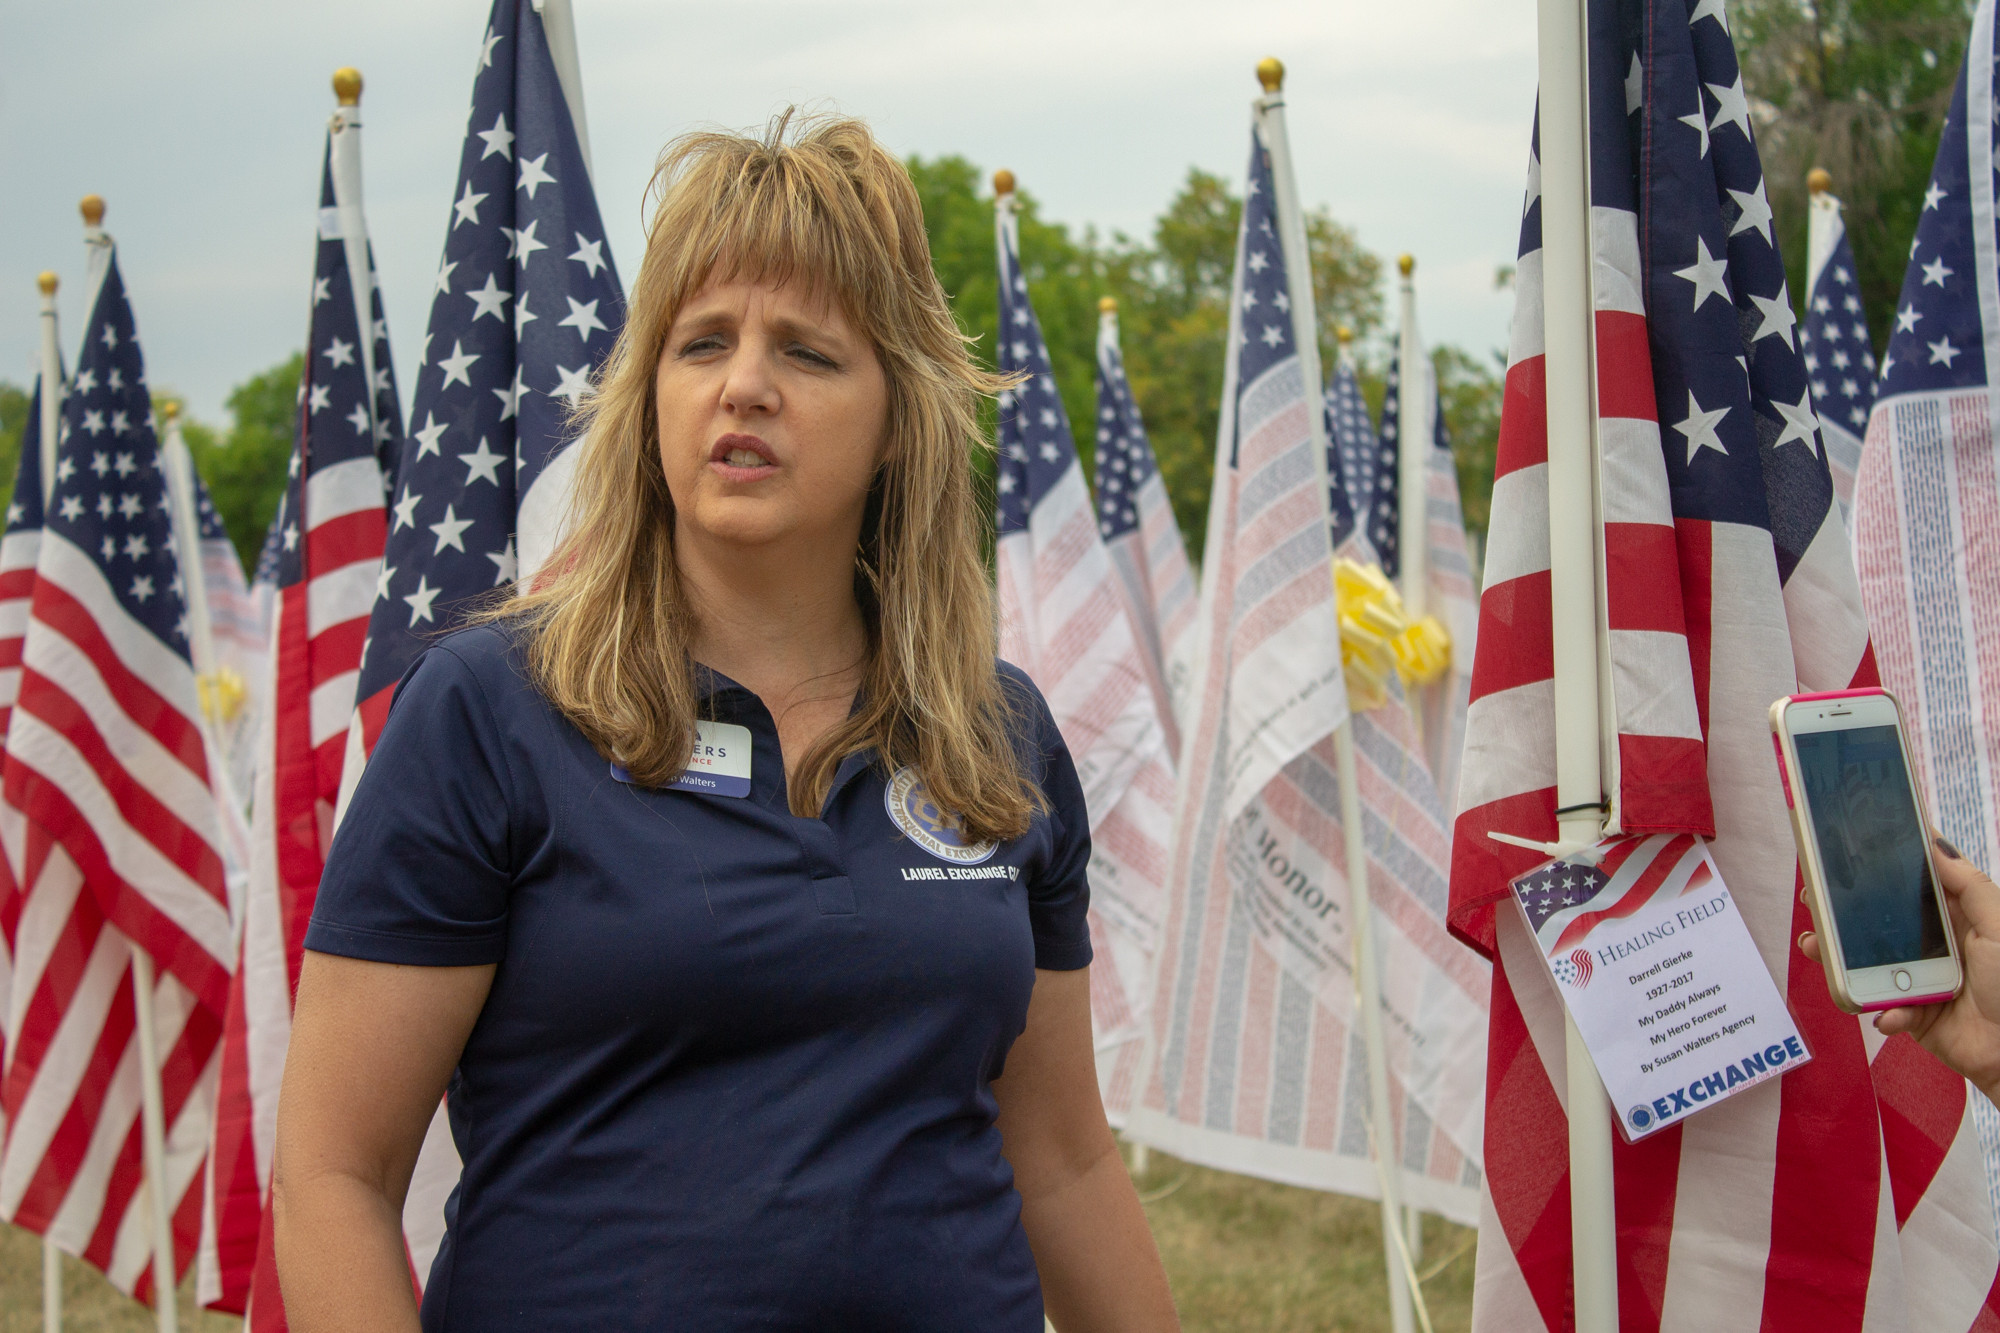 """Susan Walters dedicating the first flag to her father Darrell Gierke with the tag saying """"My Daddy Always, My Hero Forever, by Susan Waters Agency"""""""